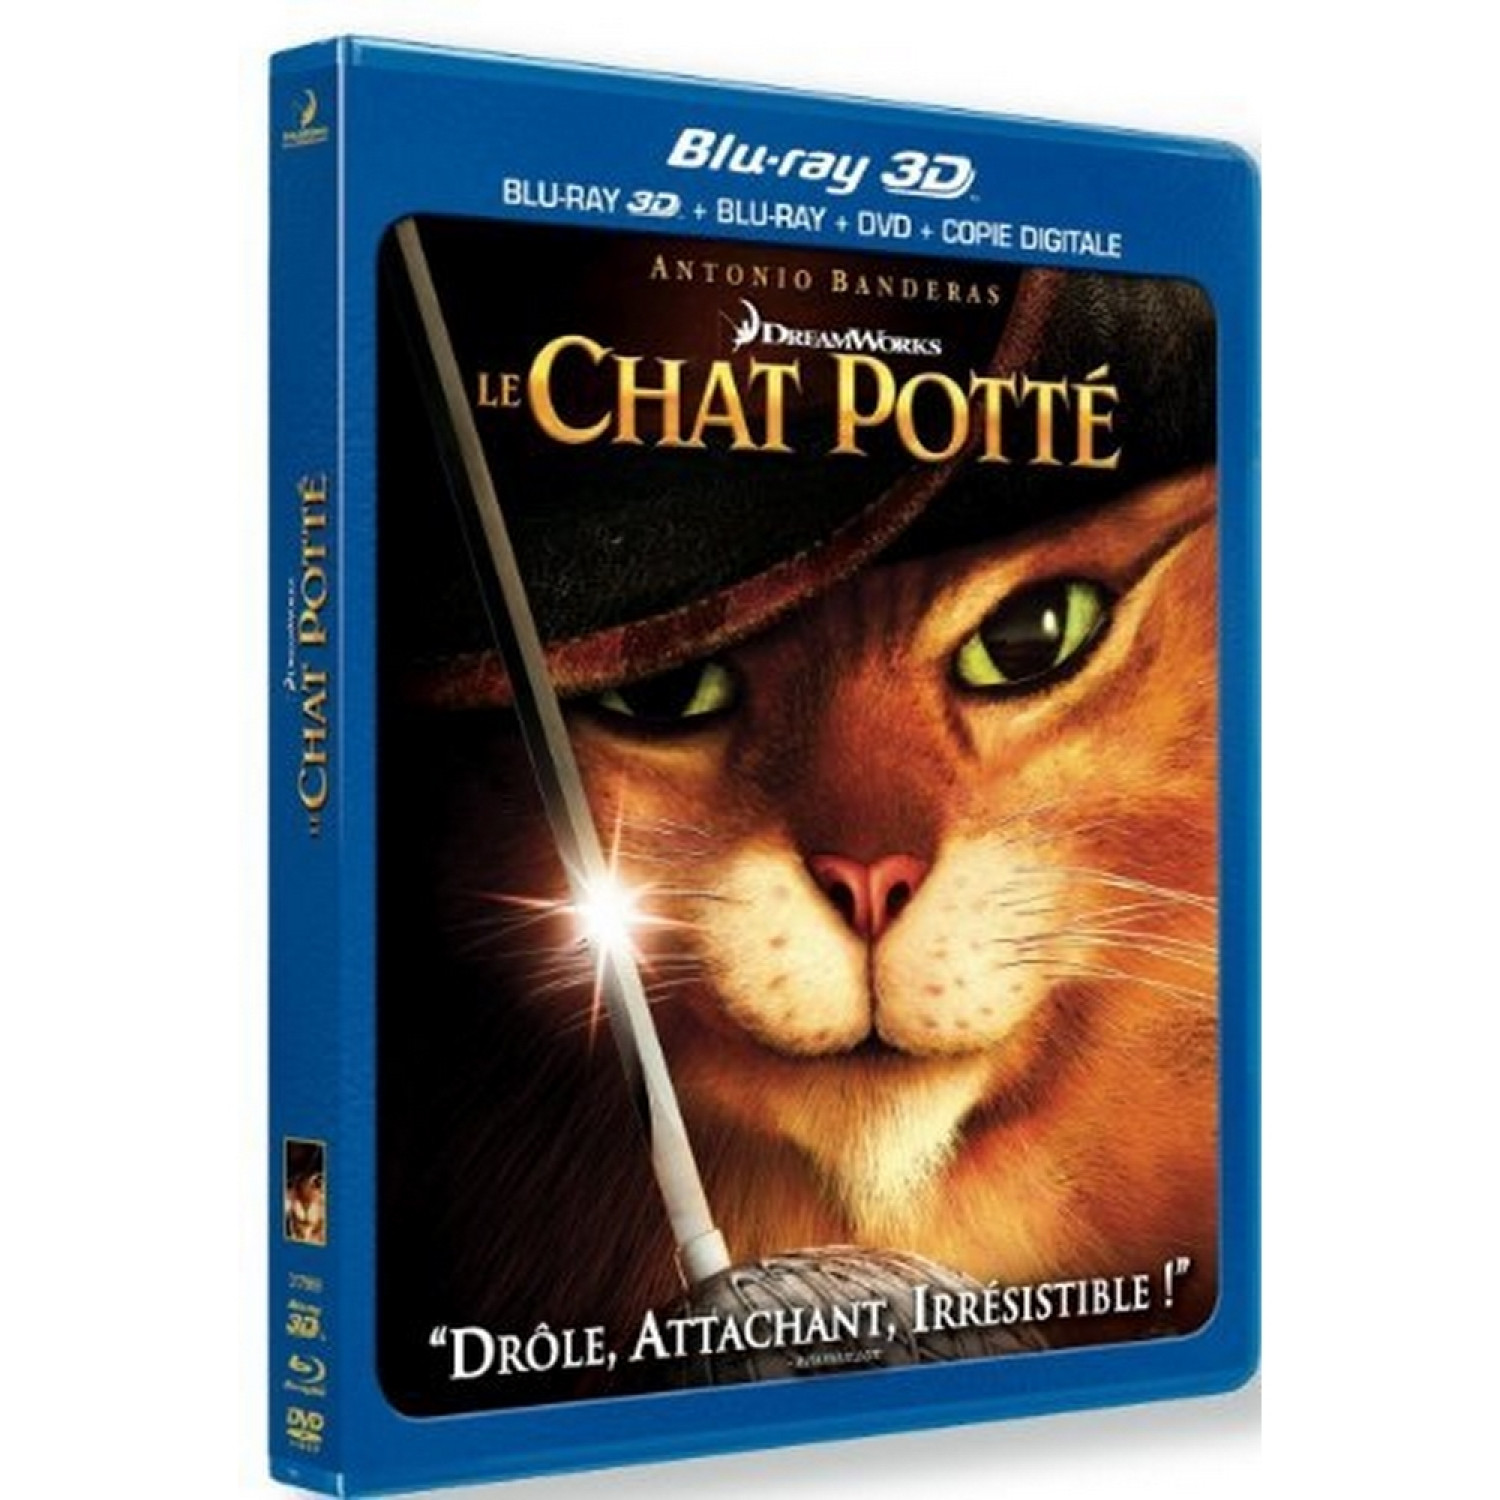 Le Chat Potte - Combo Blu-ray 3d Active + Blu-ray 2d + Dvd + Copie Digitale